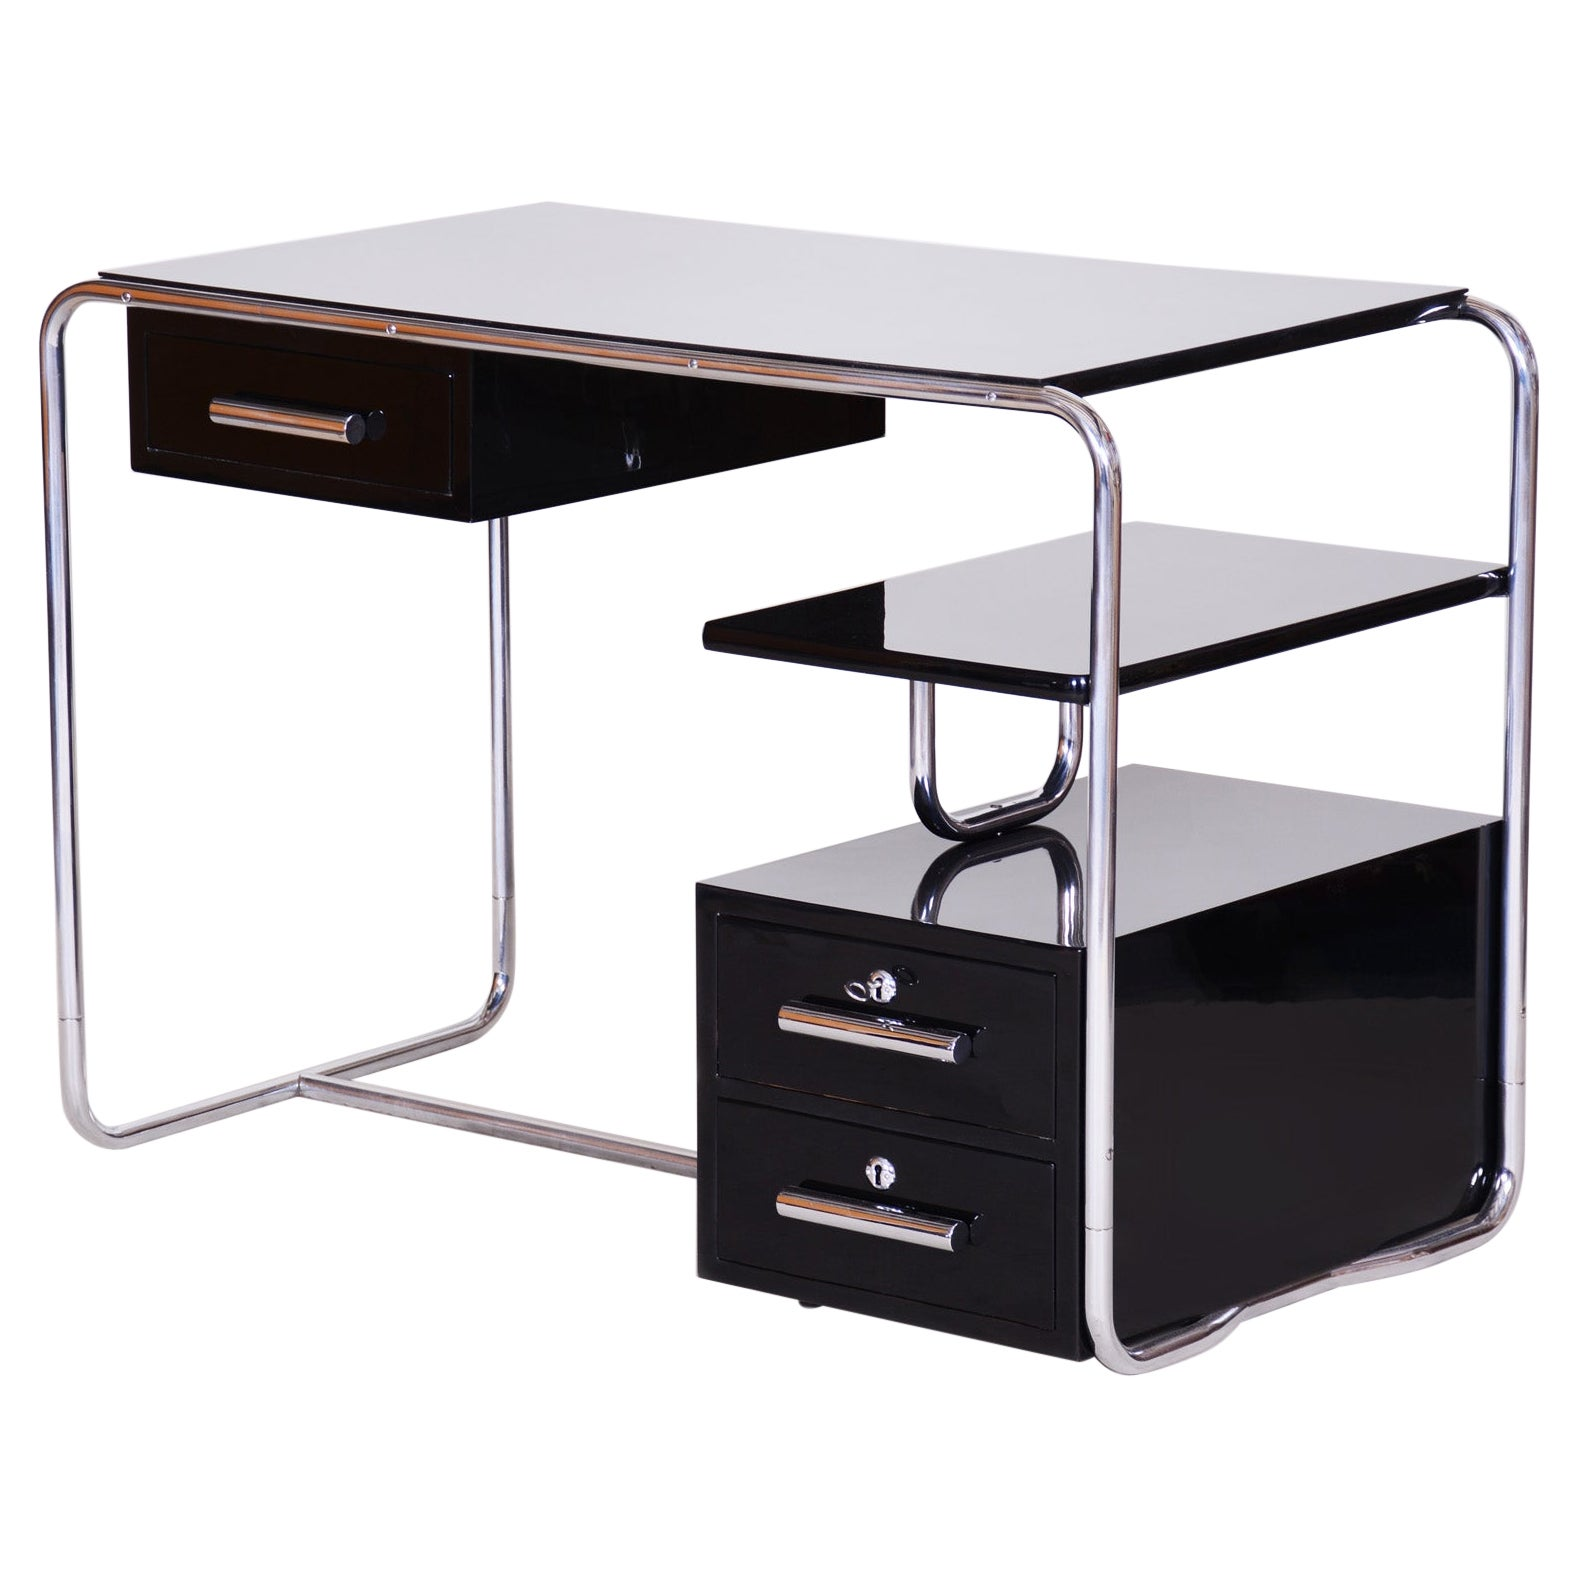 Black German Bauhaus Chrome Plated Steel Writing Desk, Made in the 1930s